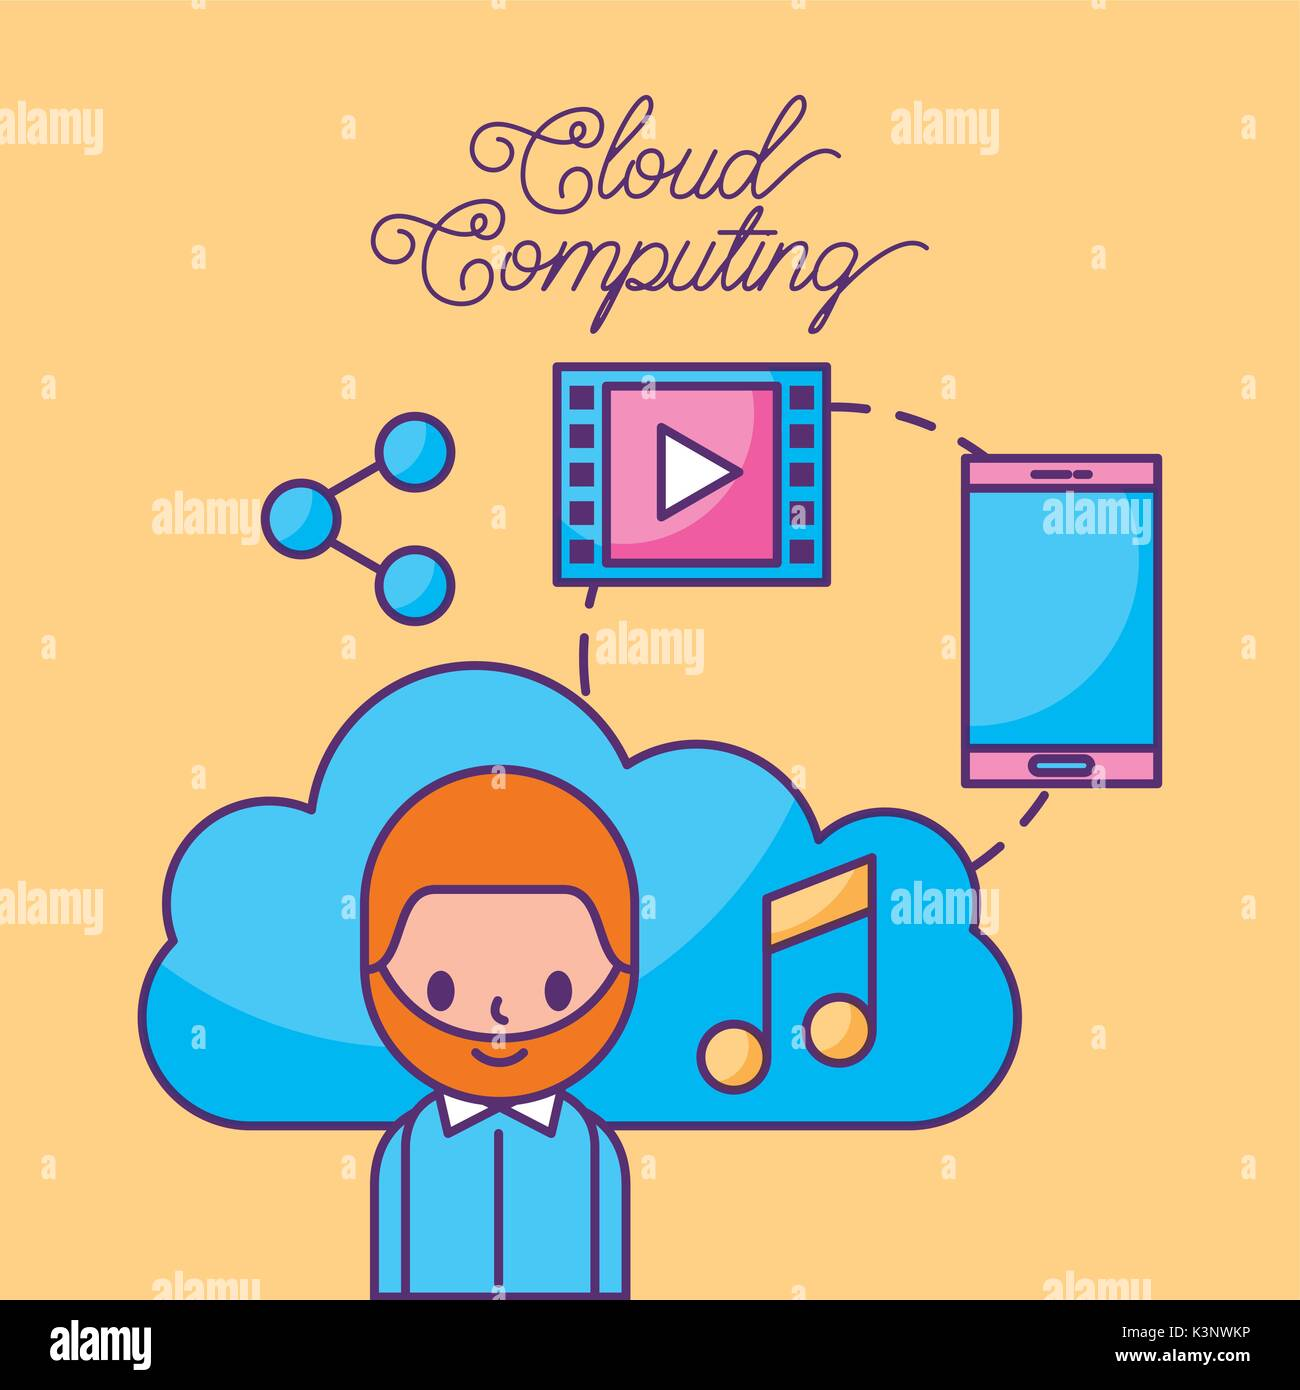 Networking Cloud Computing: Technology Innovation Cloud Computing Stock Photos